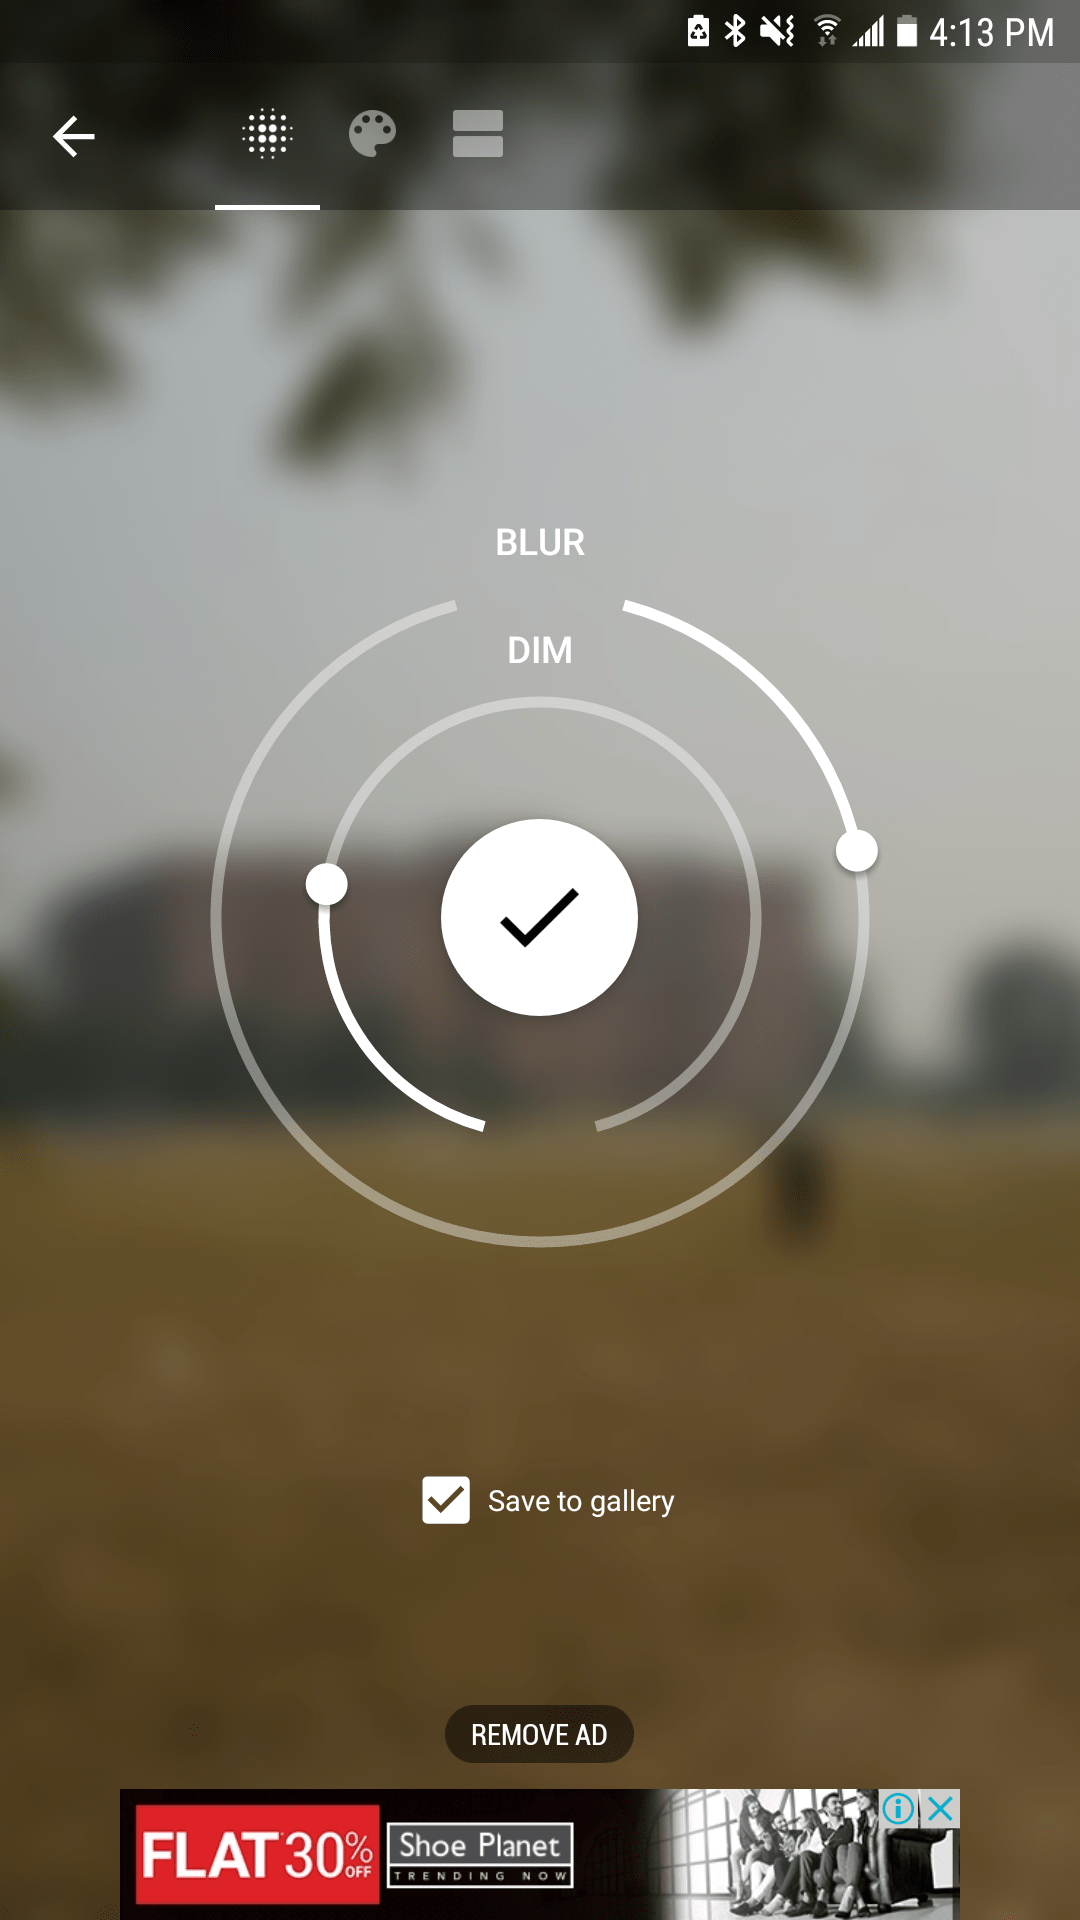 Download Blurone App - Create Wallpapers with Blur Effect 5